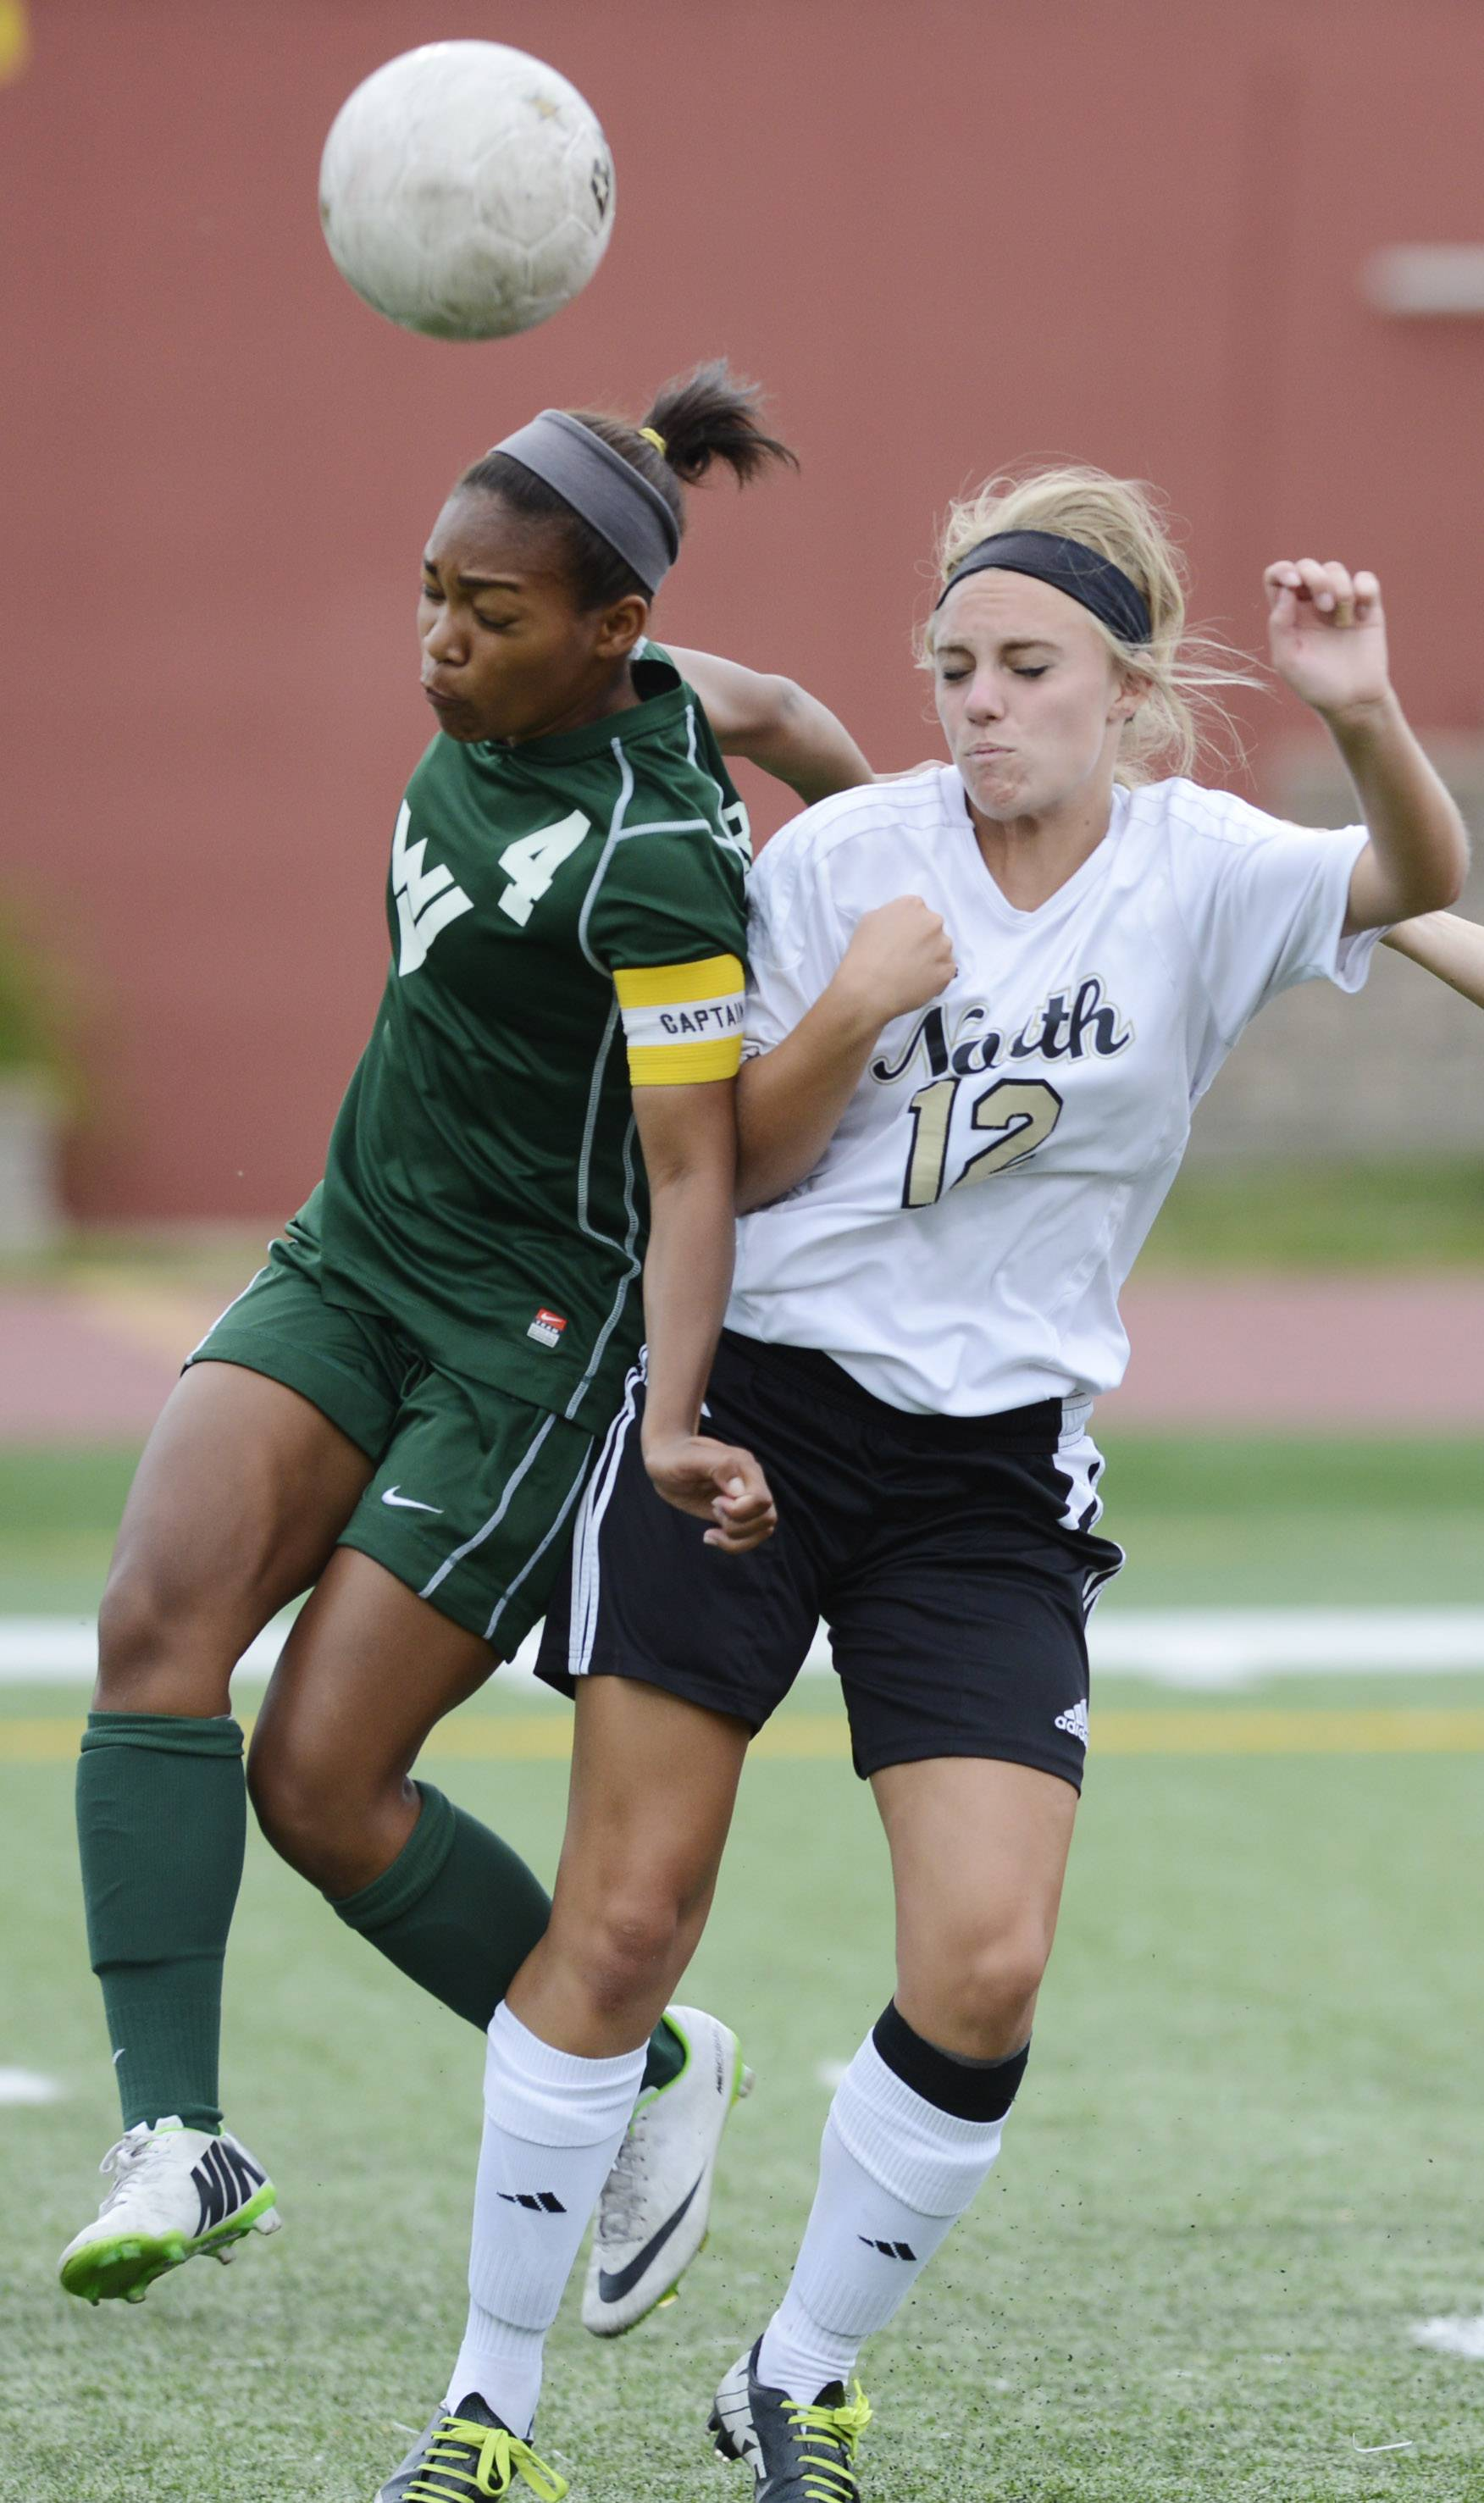 Waubonsie Valley's Dodson was born to score goals